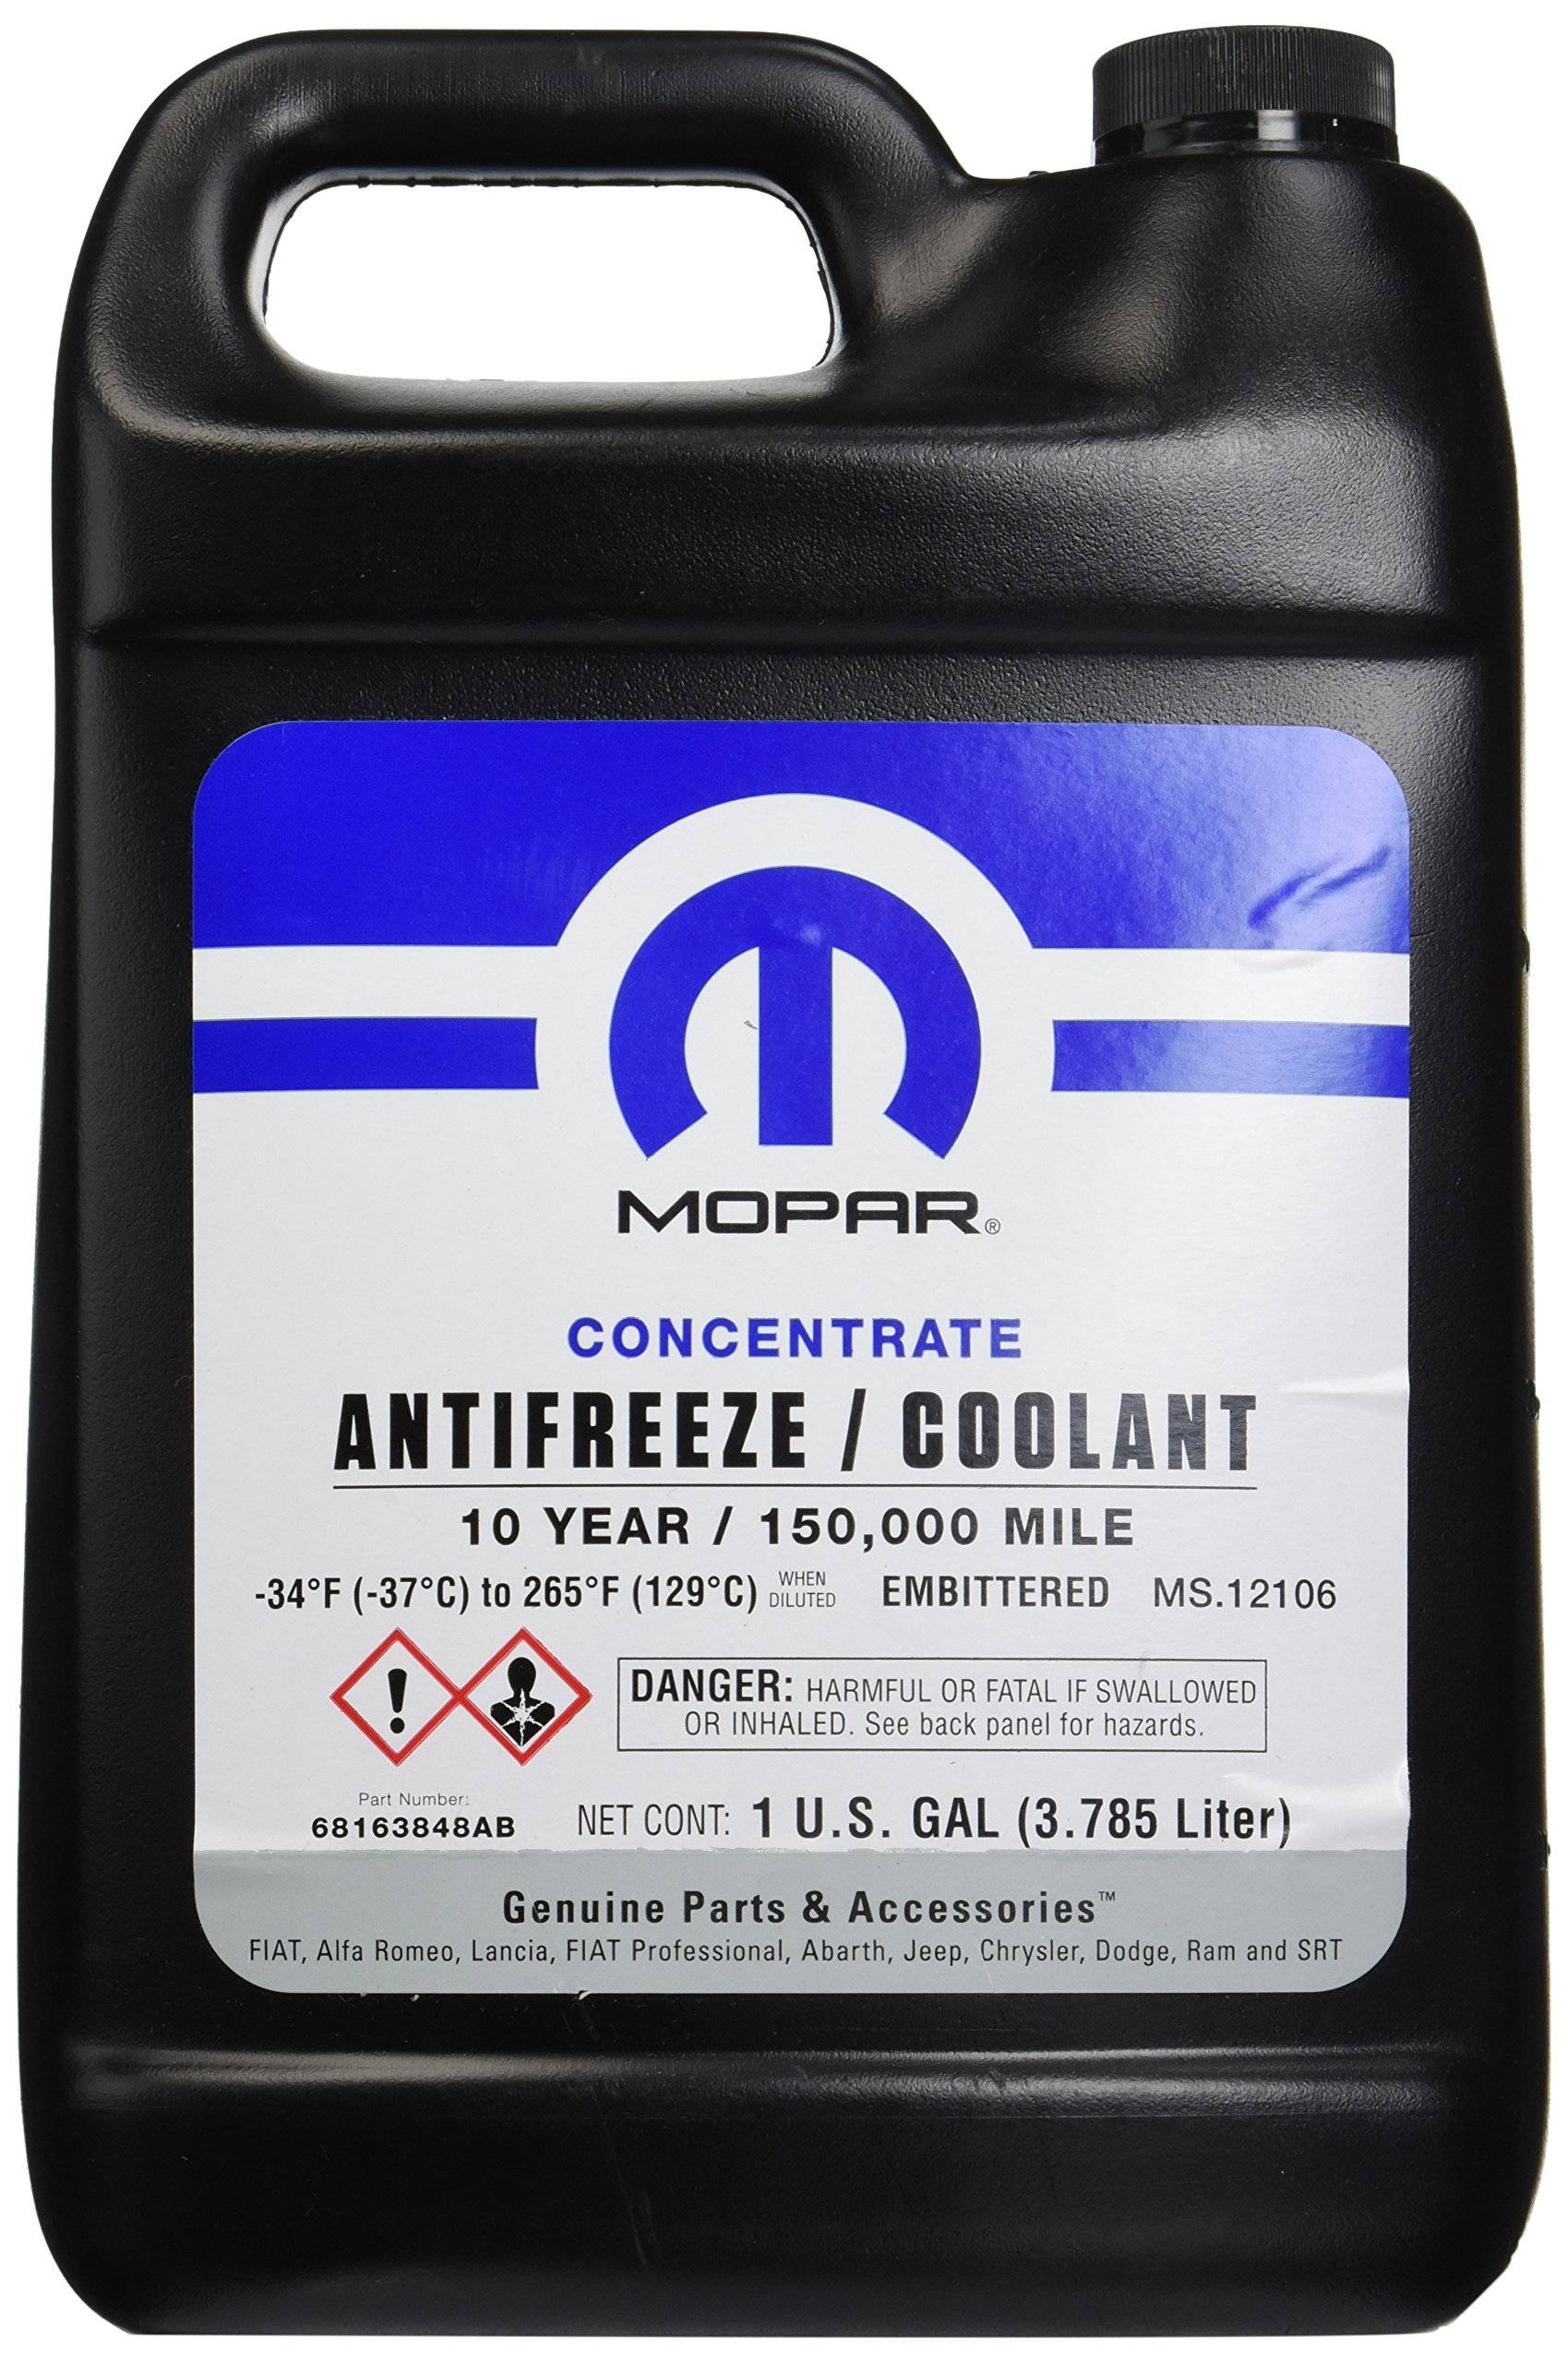 Genuine Chrysler 68163848AB Coolant Antifreeze